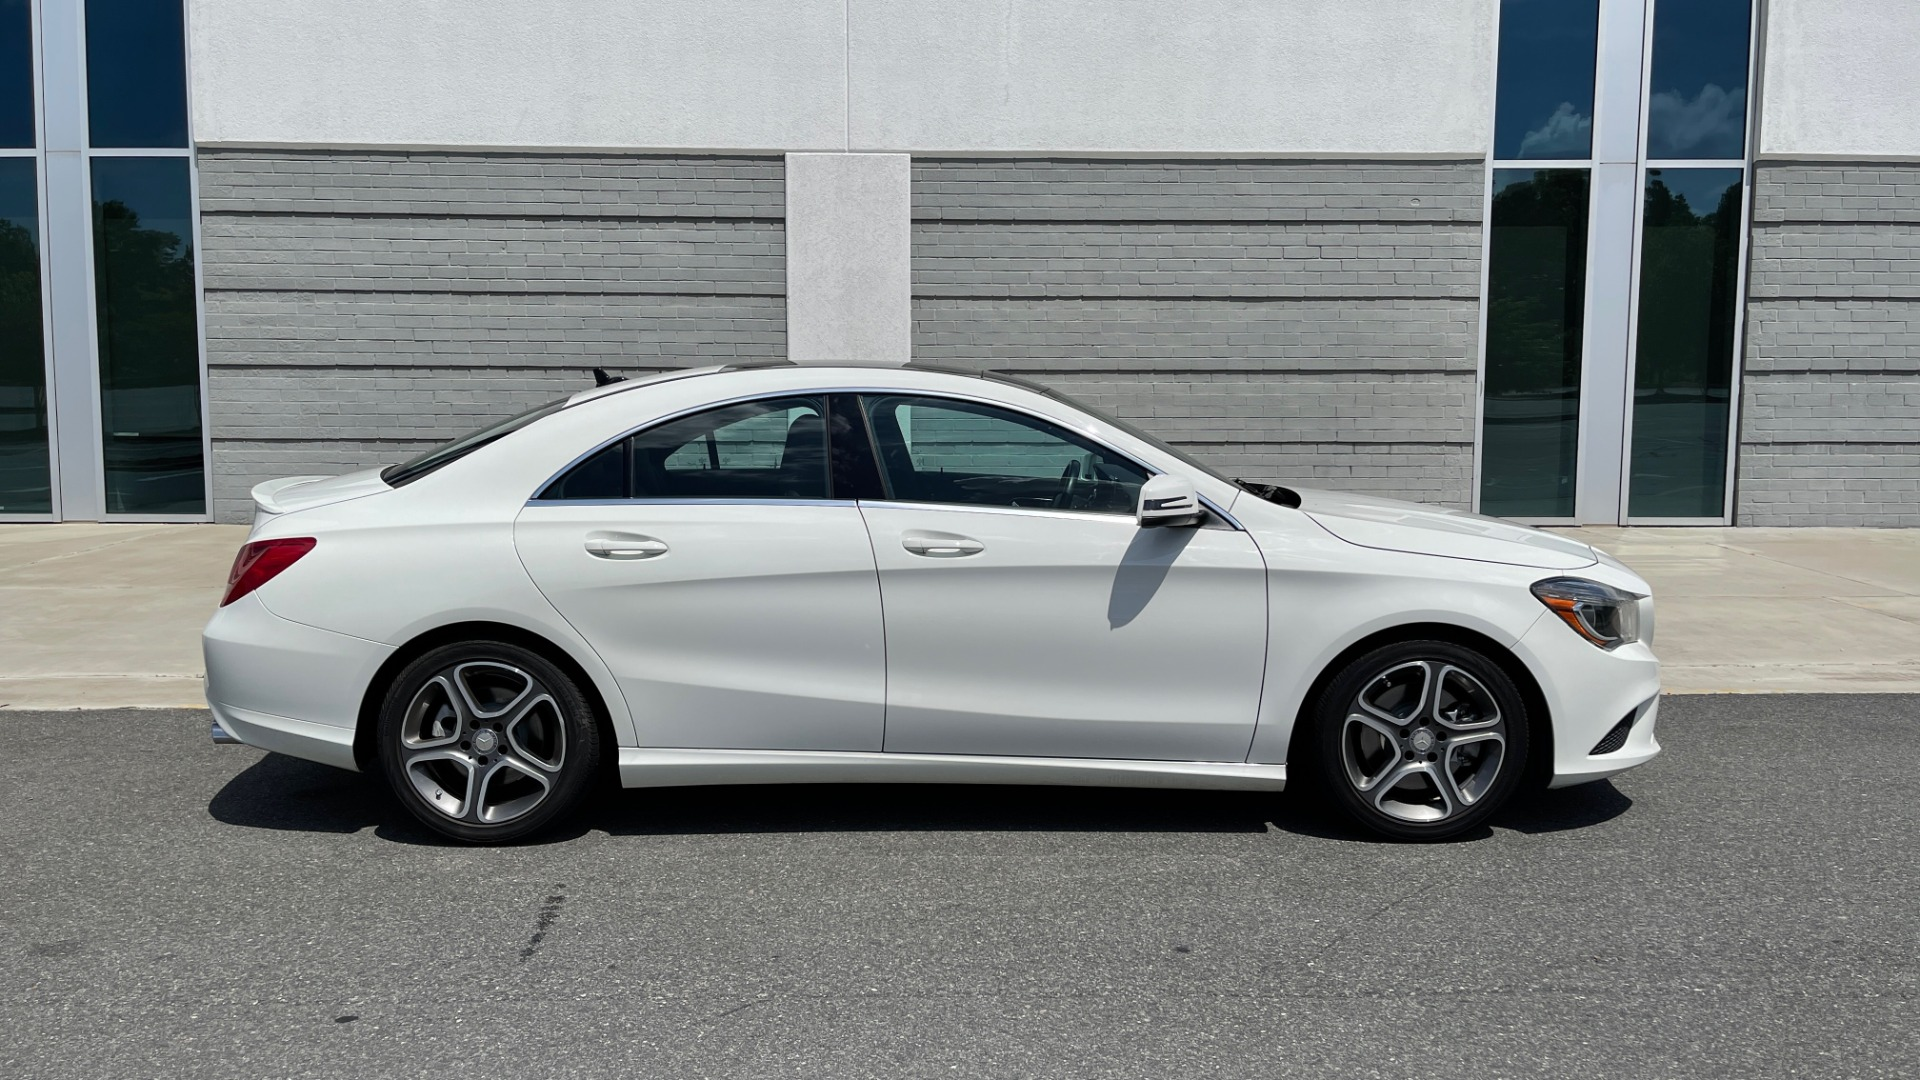 Used 2014 Mercedes-Benz CLA-Class 250 PREMIUM / NAV / MULTIMEDIA PKG / PANO-ROOF / REARVIEW for sale $19,495 at Formula Imports in Charlotte NC 28227 7